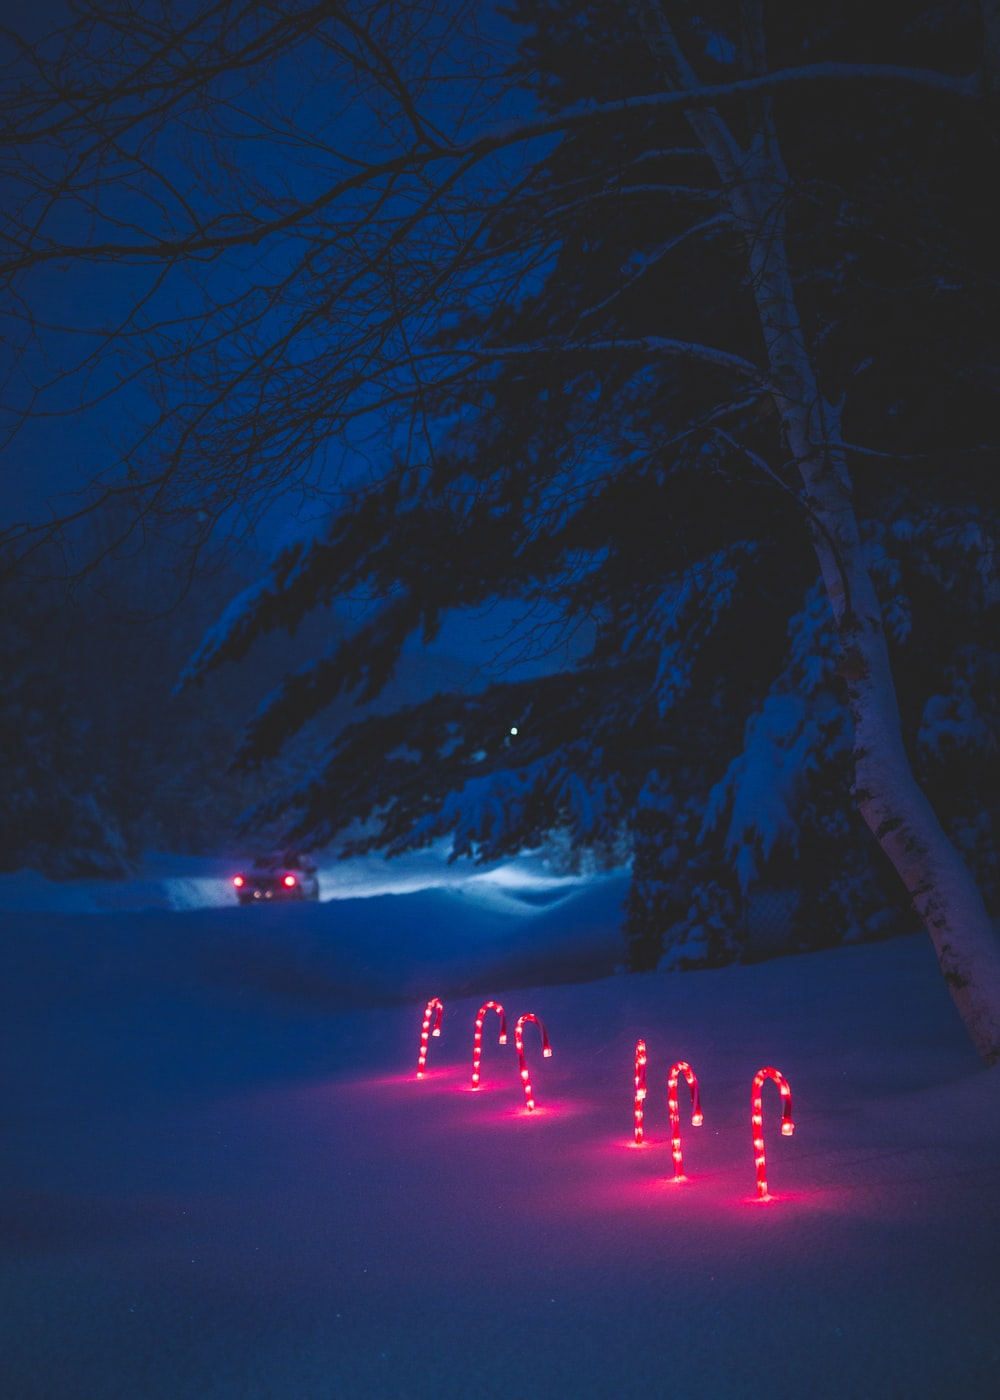 lighted candy cane and surrounded by snow